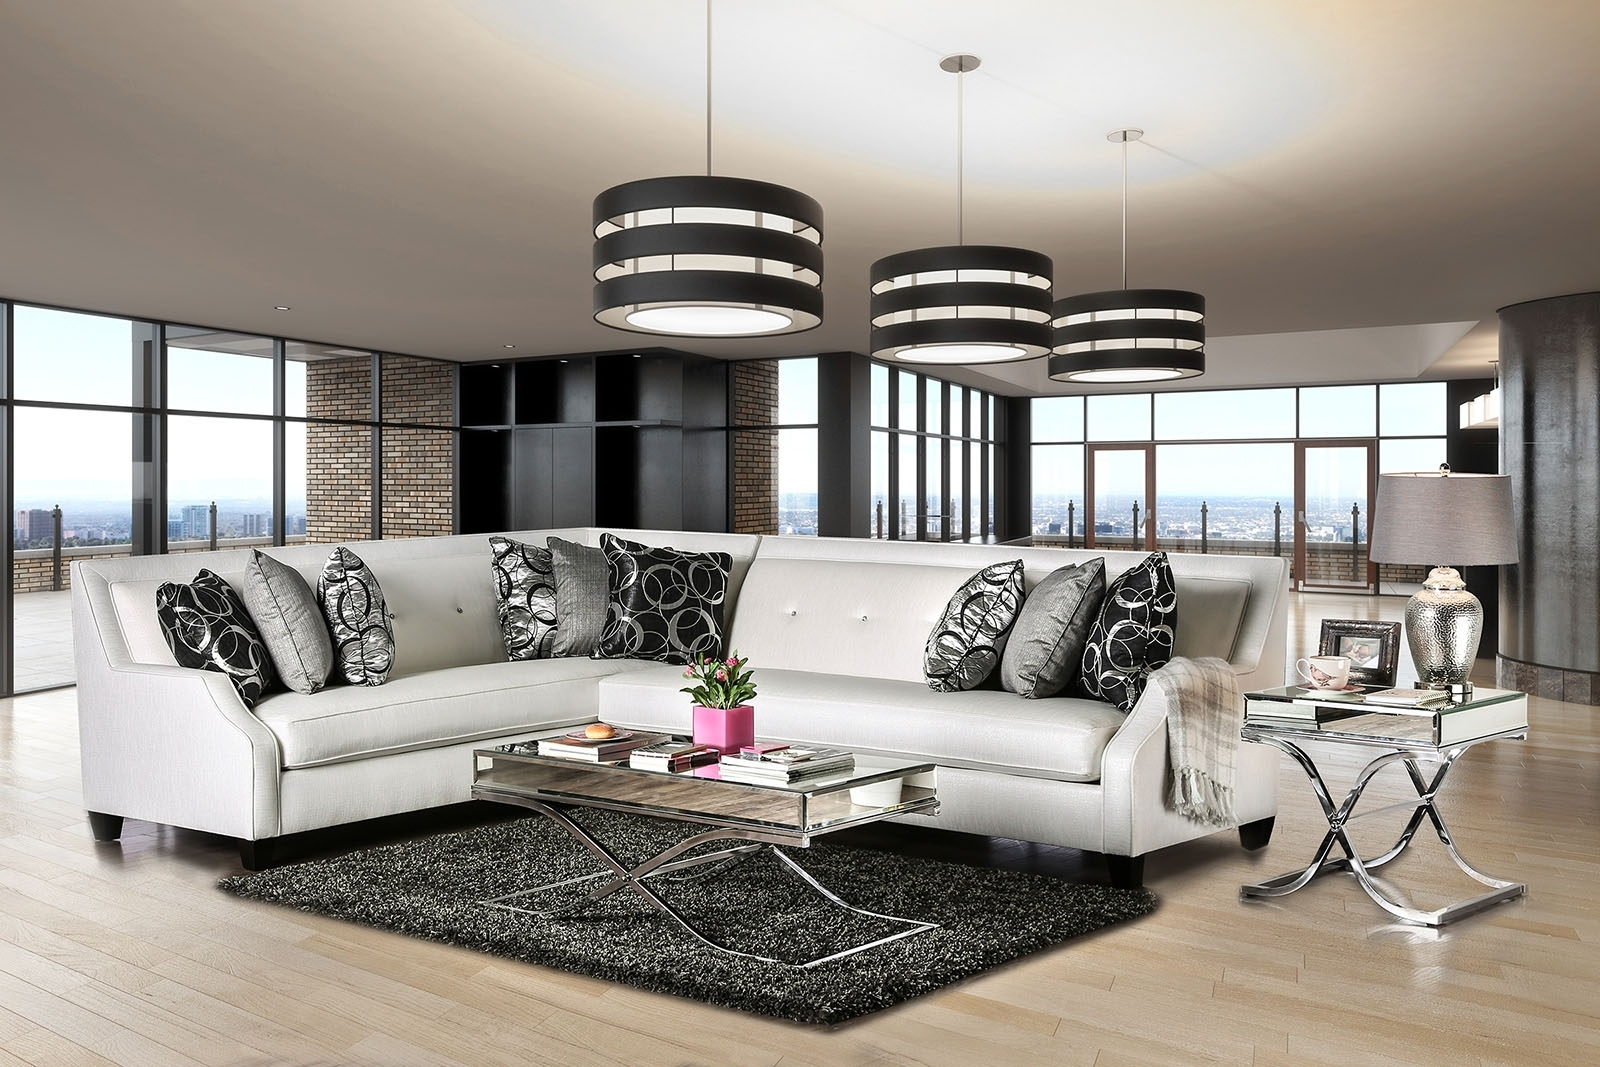 Furniture Of America Sm2263 Off White Jewel Tufted Sectional Sofa In 2018 Tufted Sectional Sofas (View 13 of 15)